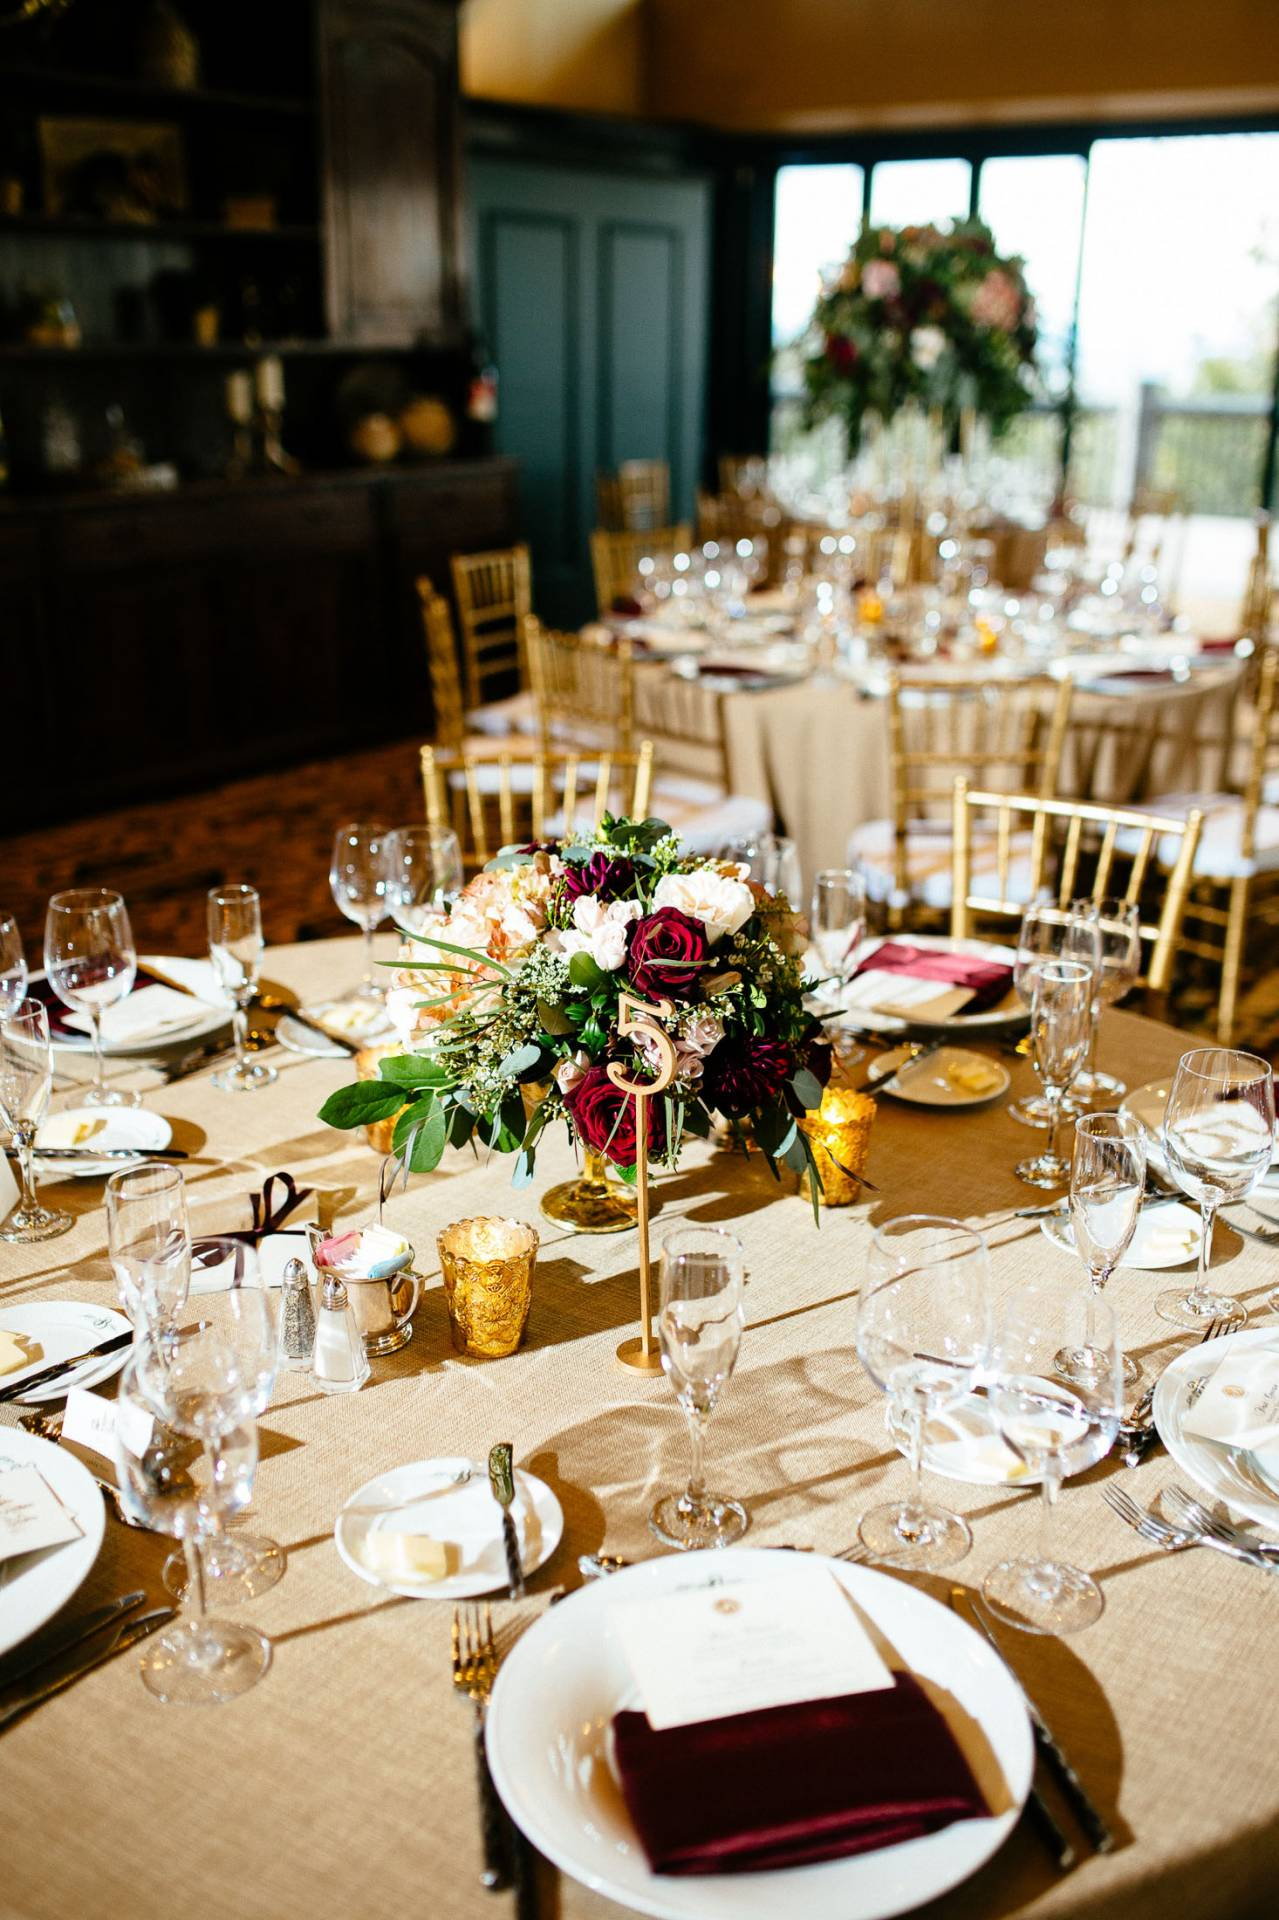 Table settings and centerpieces inside the Cheyenne Lodge at The Broadmoor.